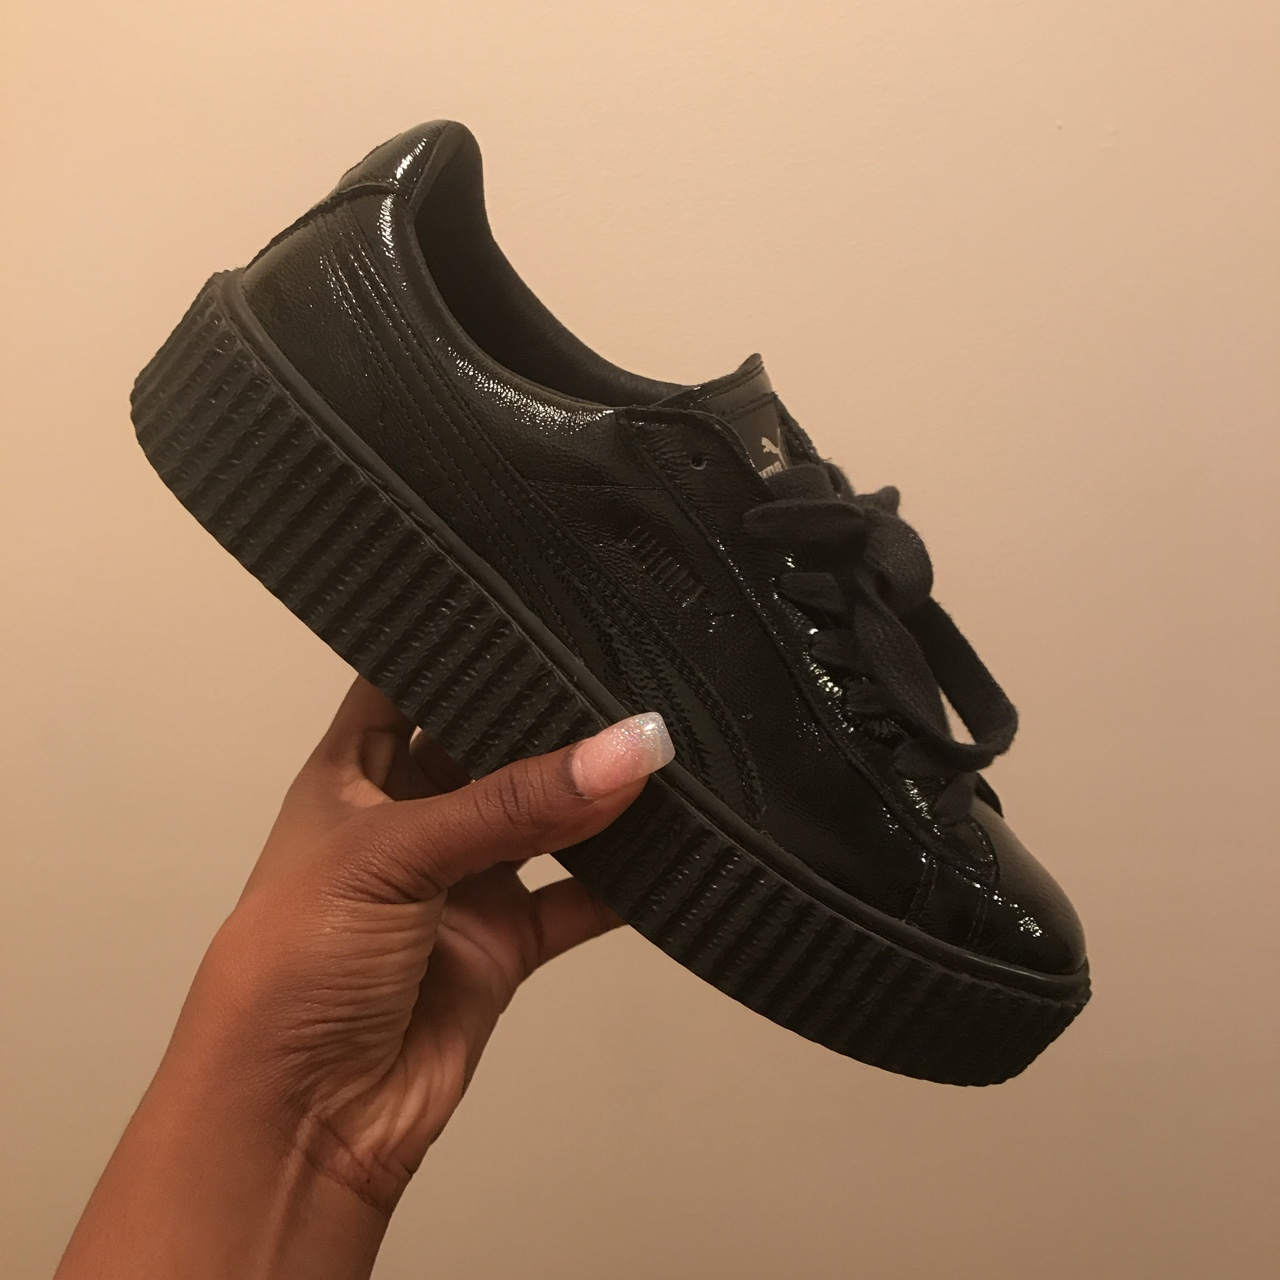 competitive price ae7fe f8c7a Rihanna Fenty Puma creeper. Cracked patent leather.... - Depop